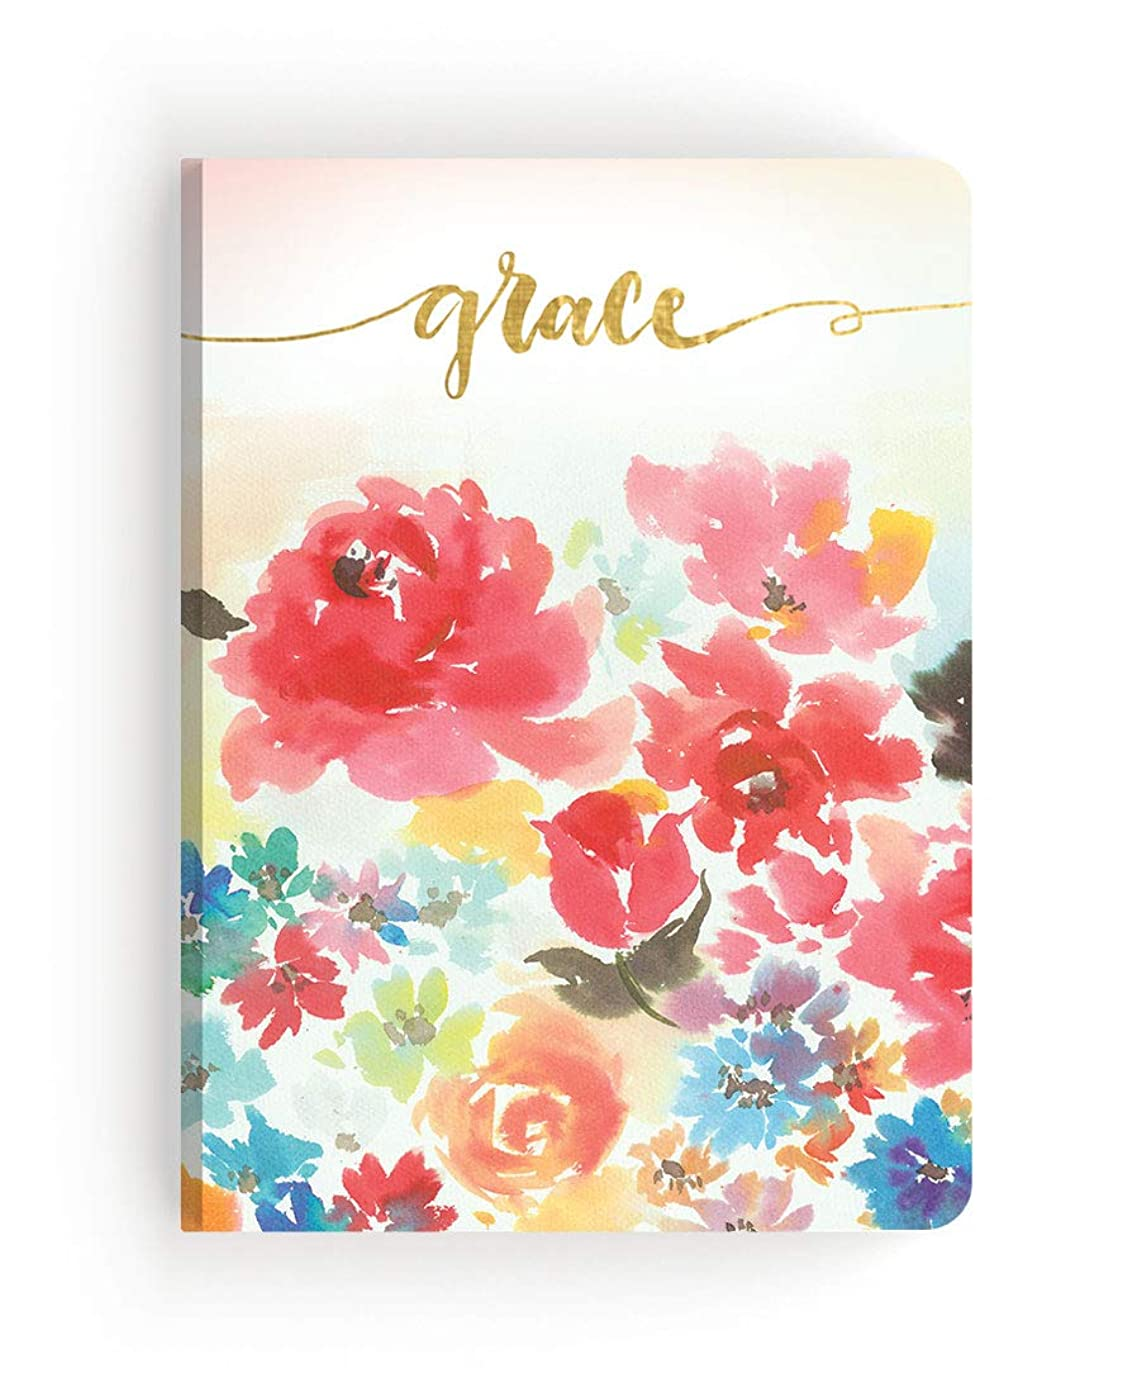 Paper House Productions JL-3007E Watercolor Floral Grace Softcover Journal Dot Grid Notebook, Diary